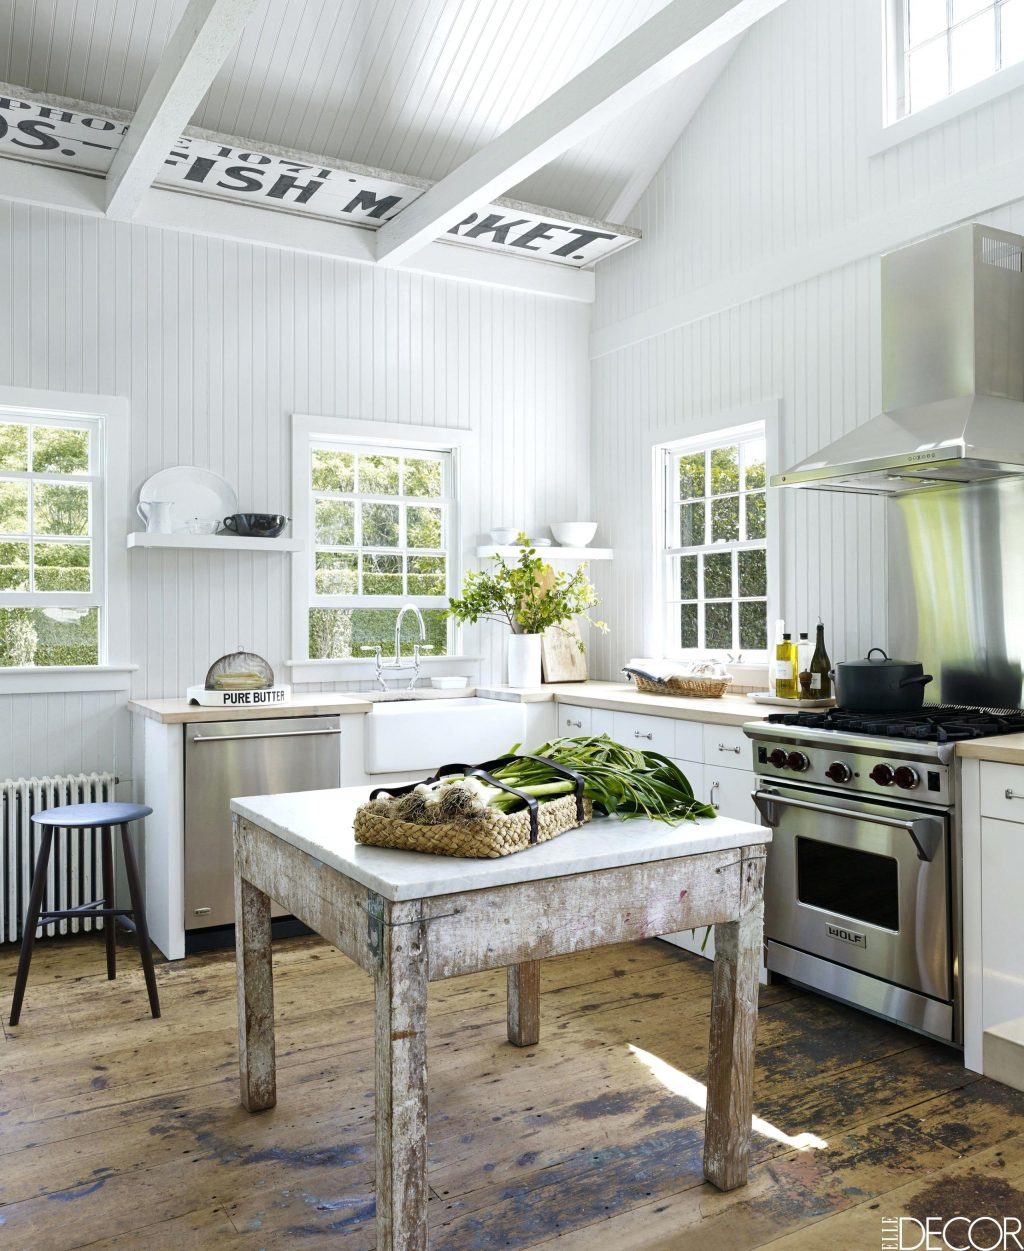 Rustic Country Kitchen Rustic Country Kitchens Rustic French Country